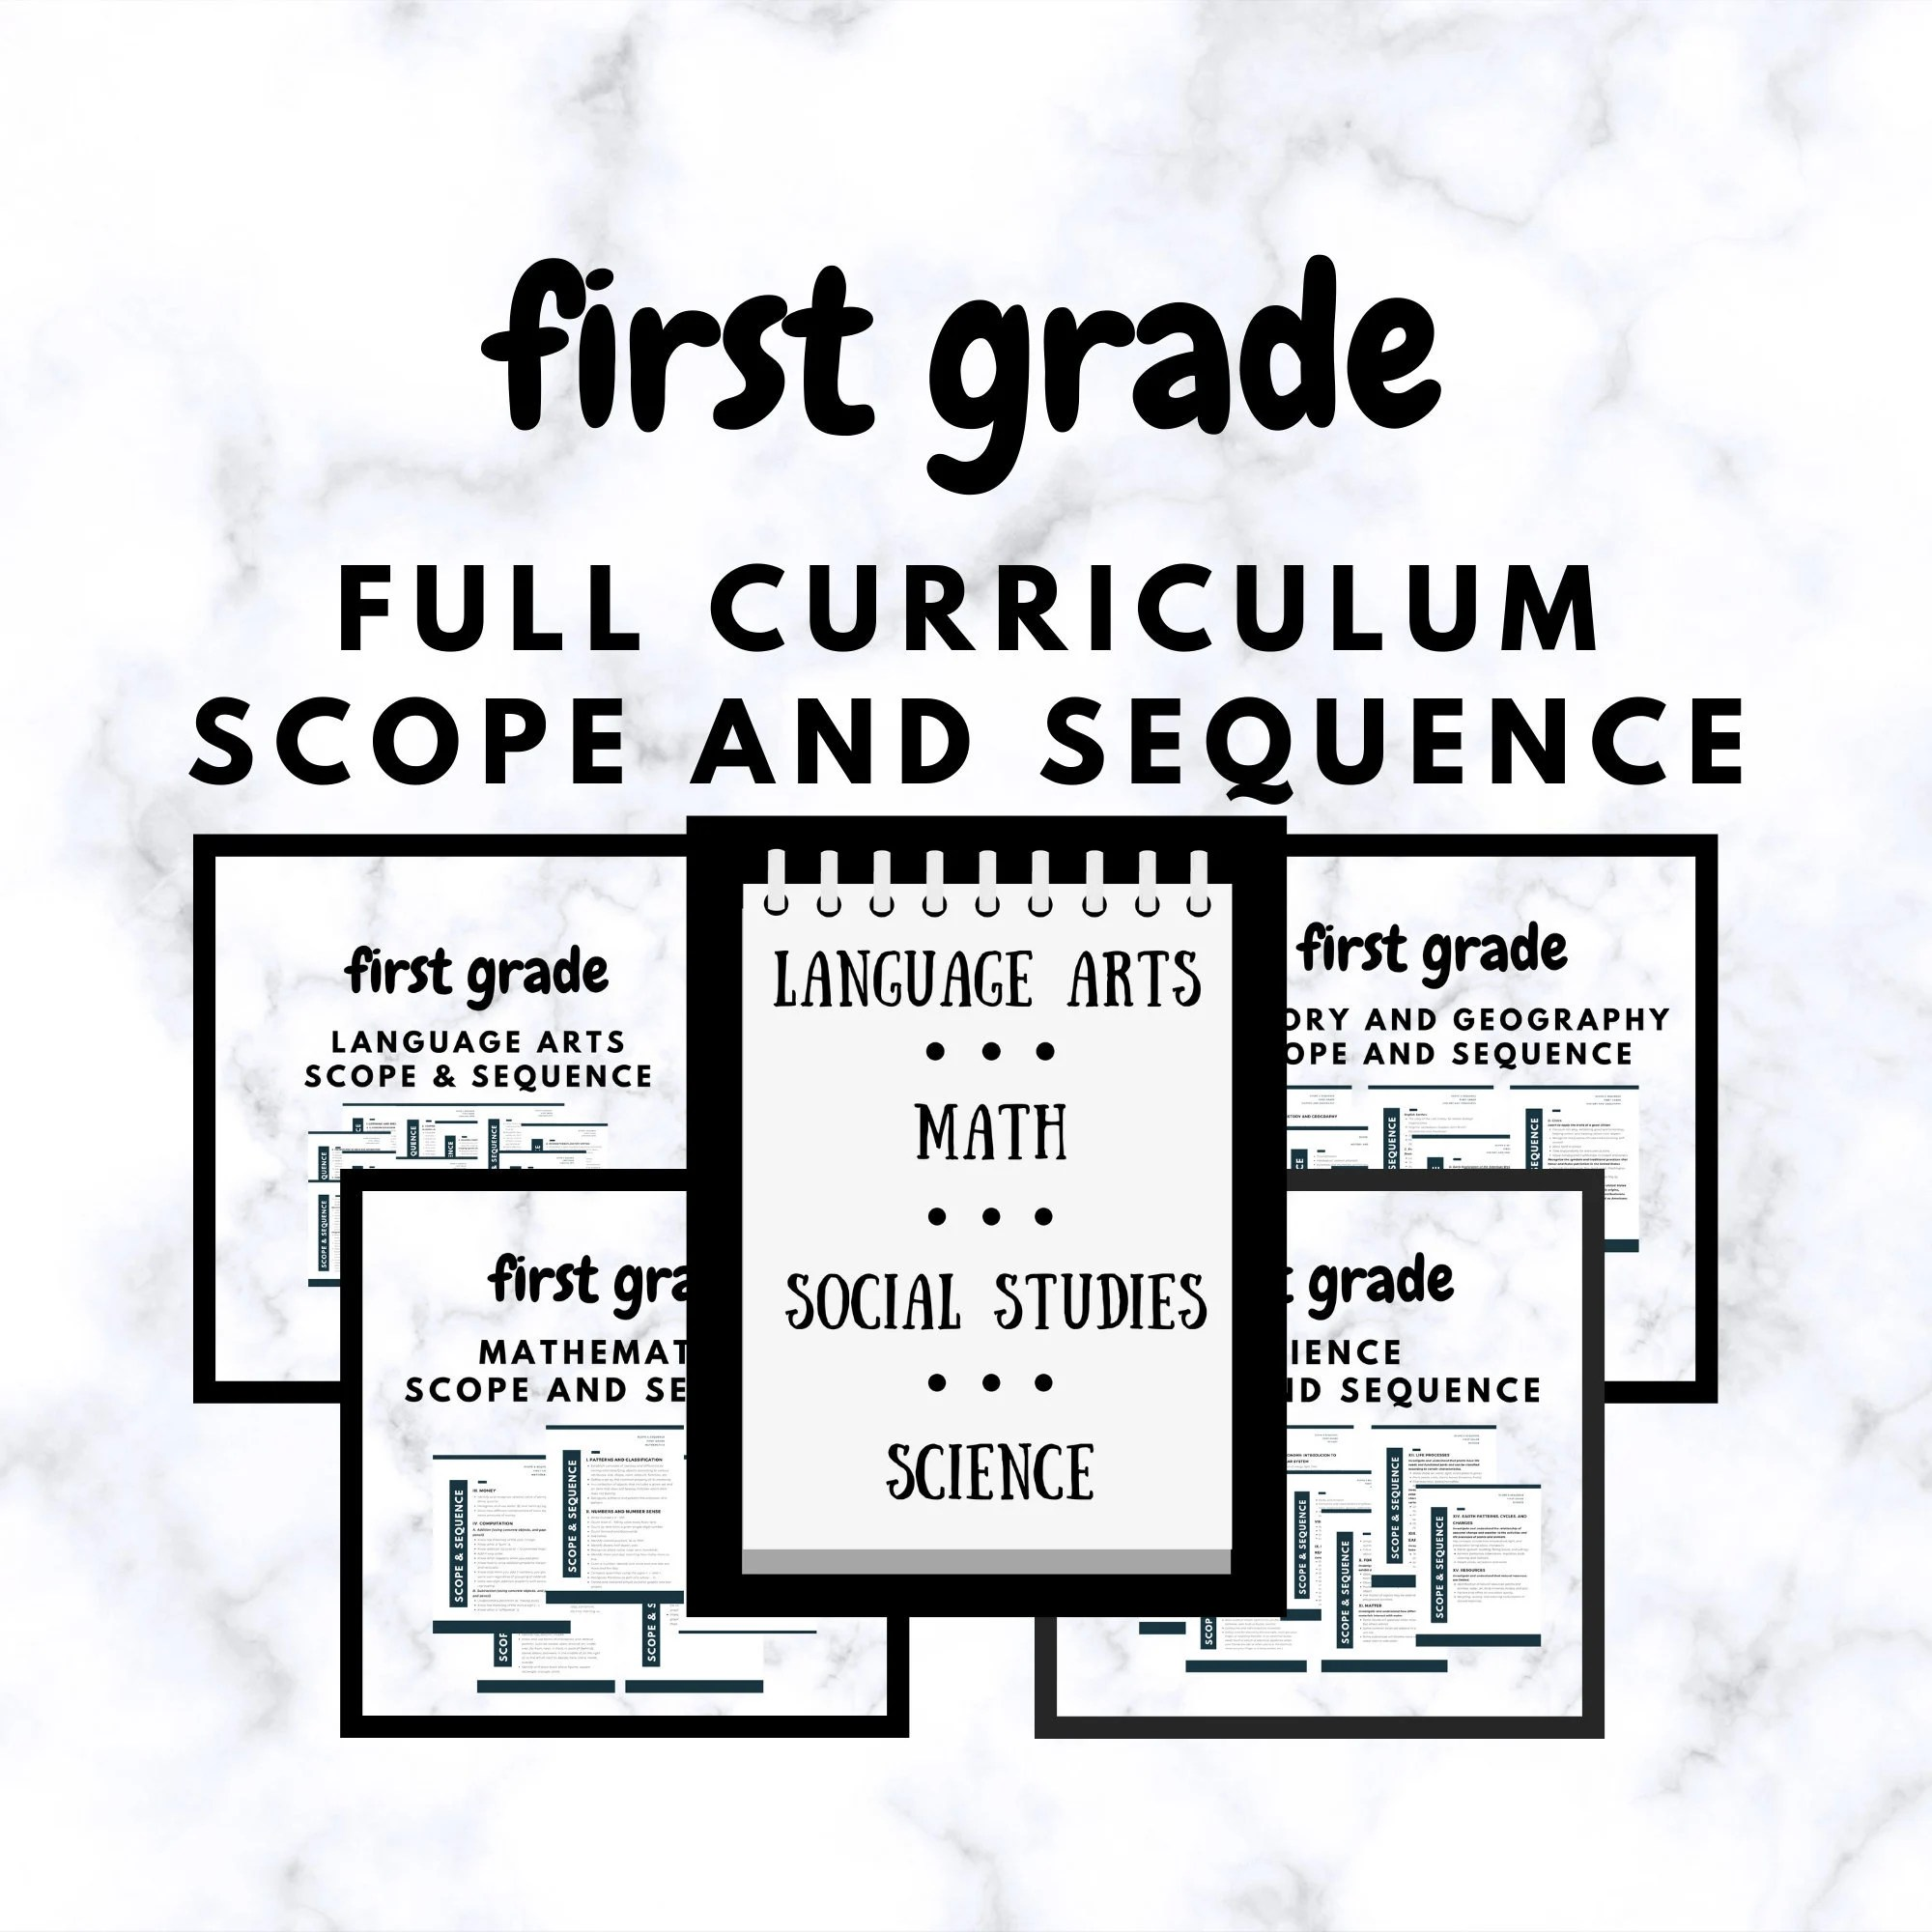 Homeschool First Grade Full Curriculum Scope and Sequence